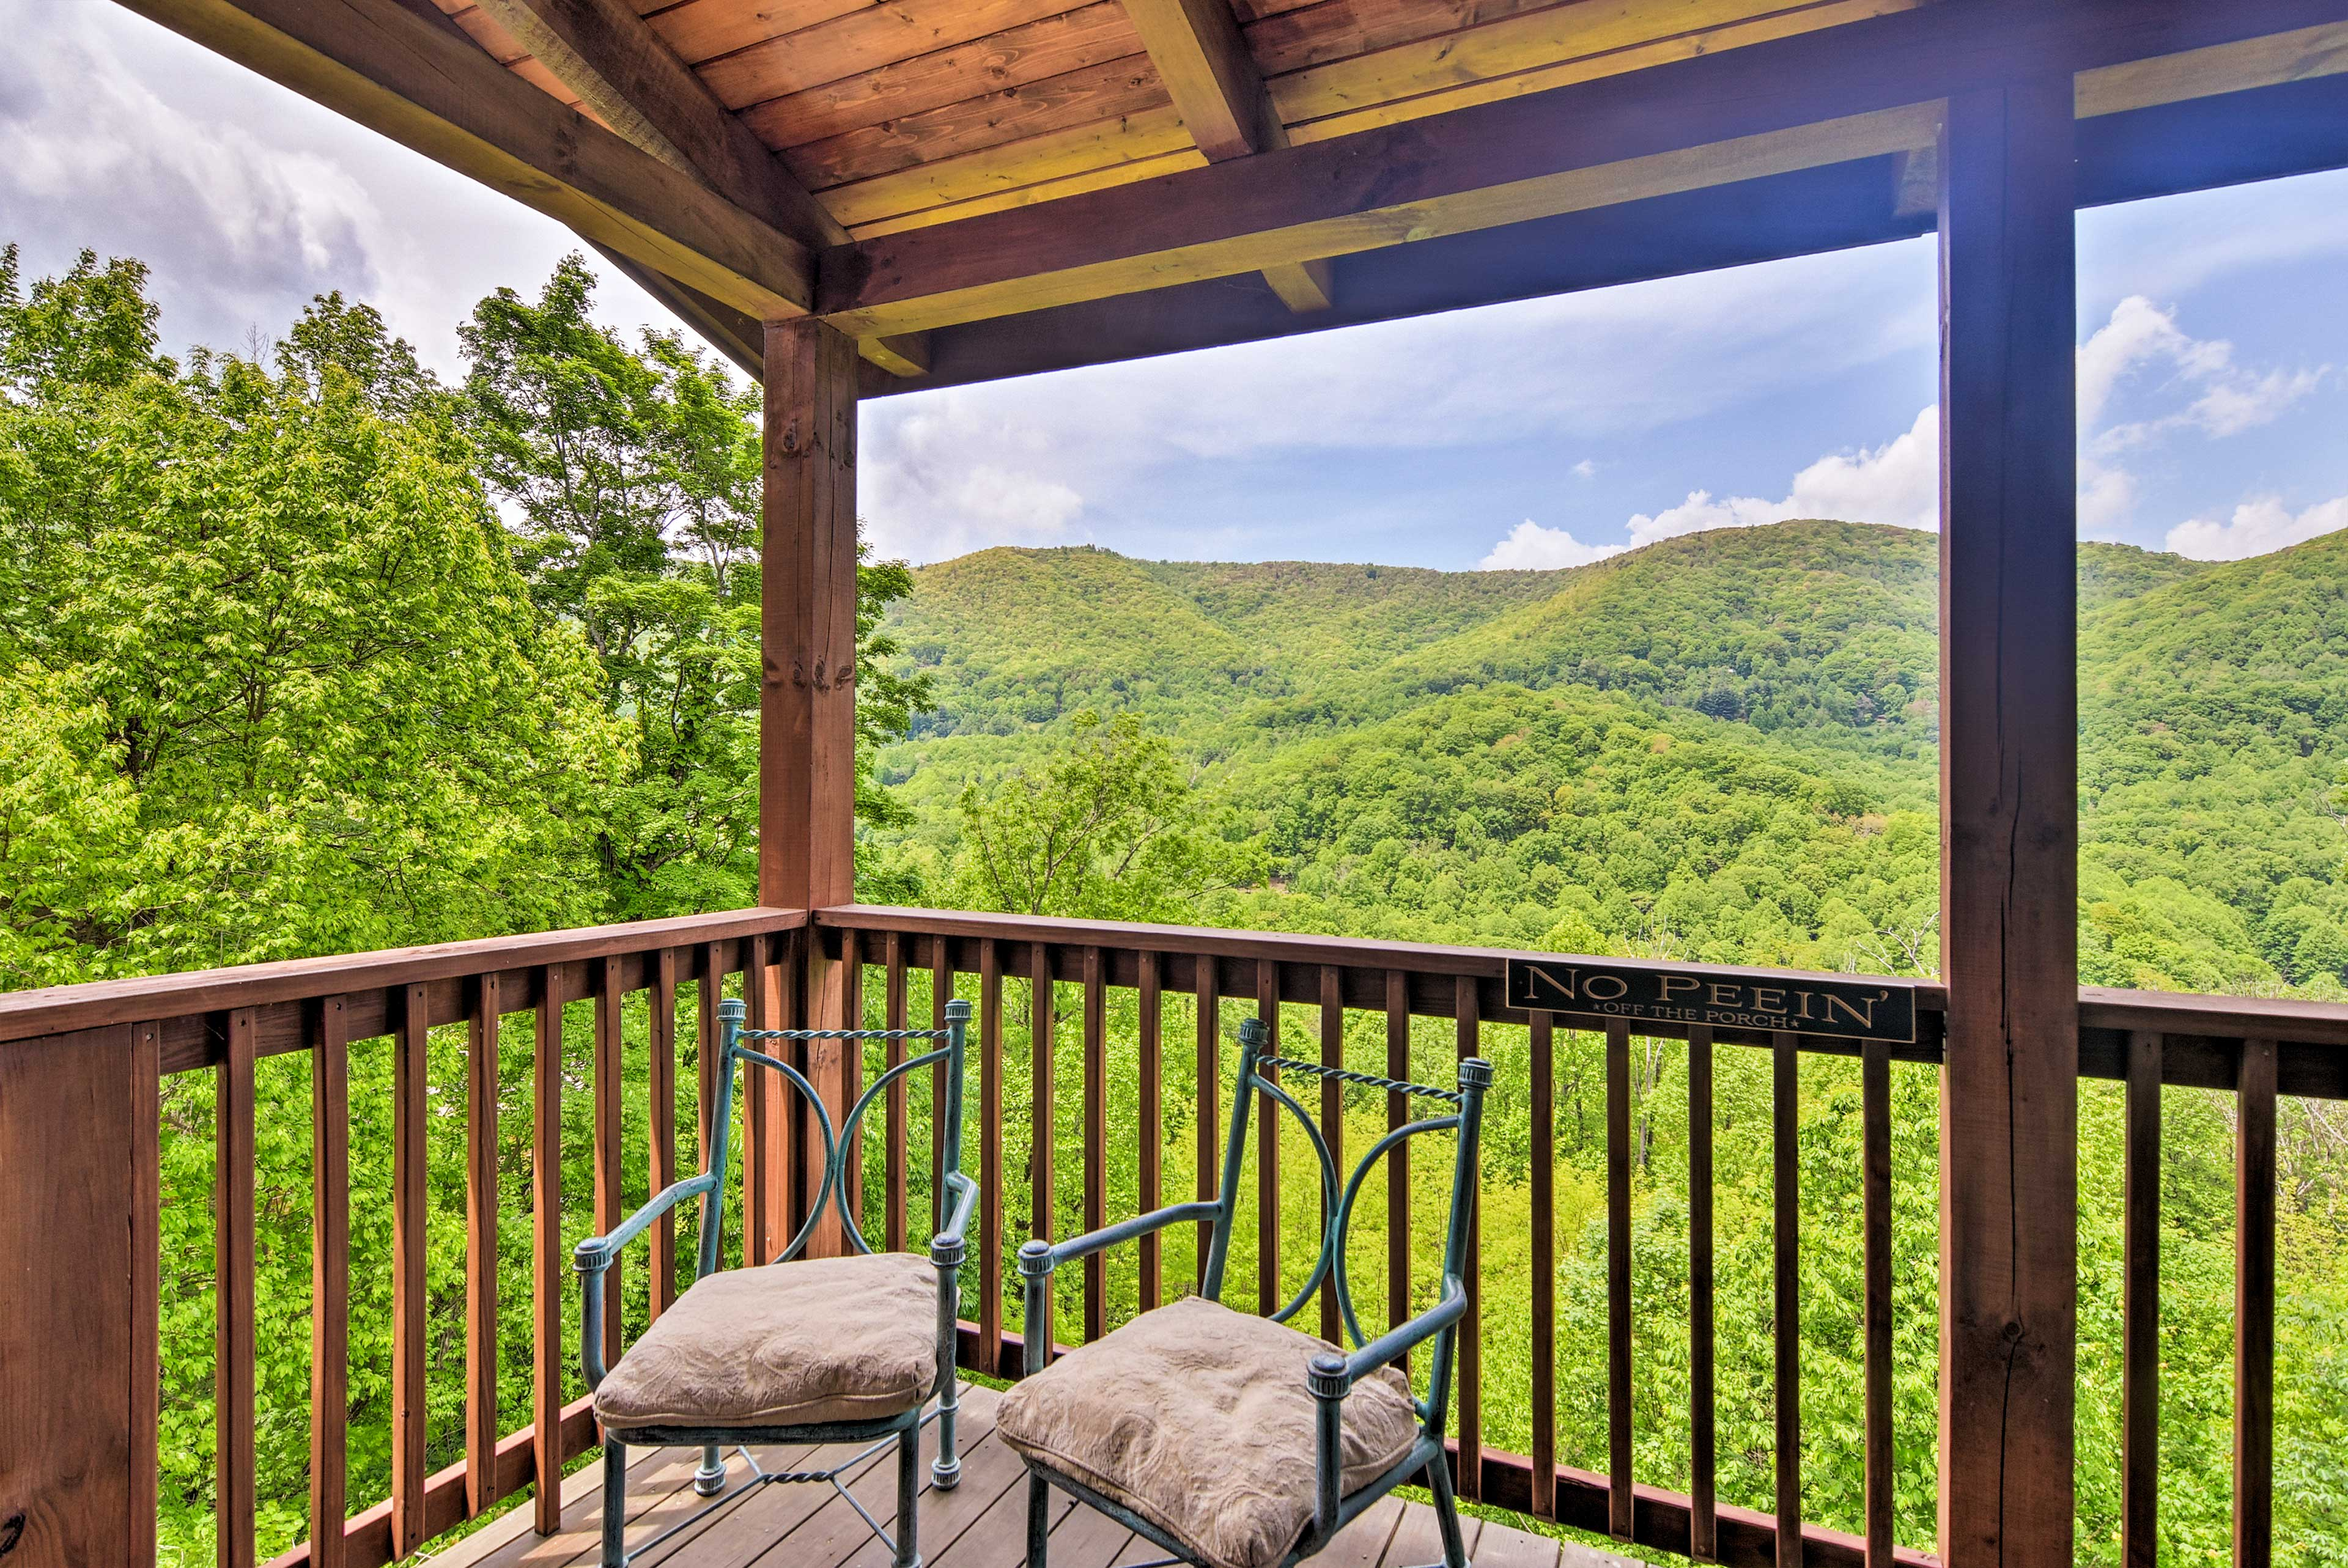 This phenomenal vacation rental property sits above the treeline.